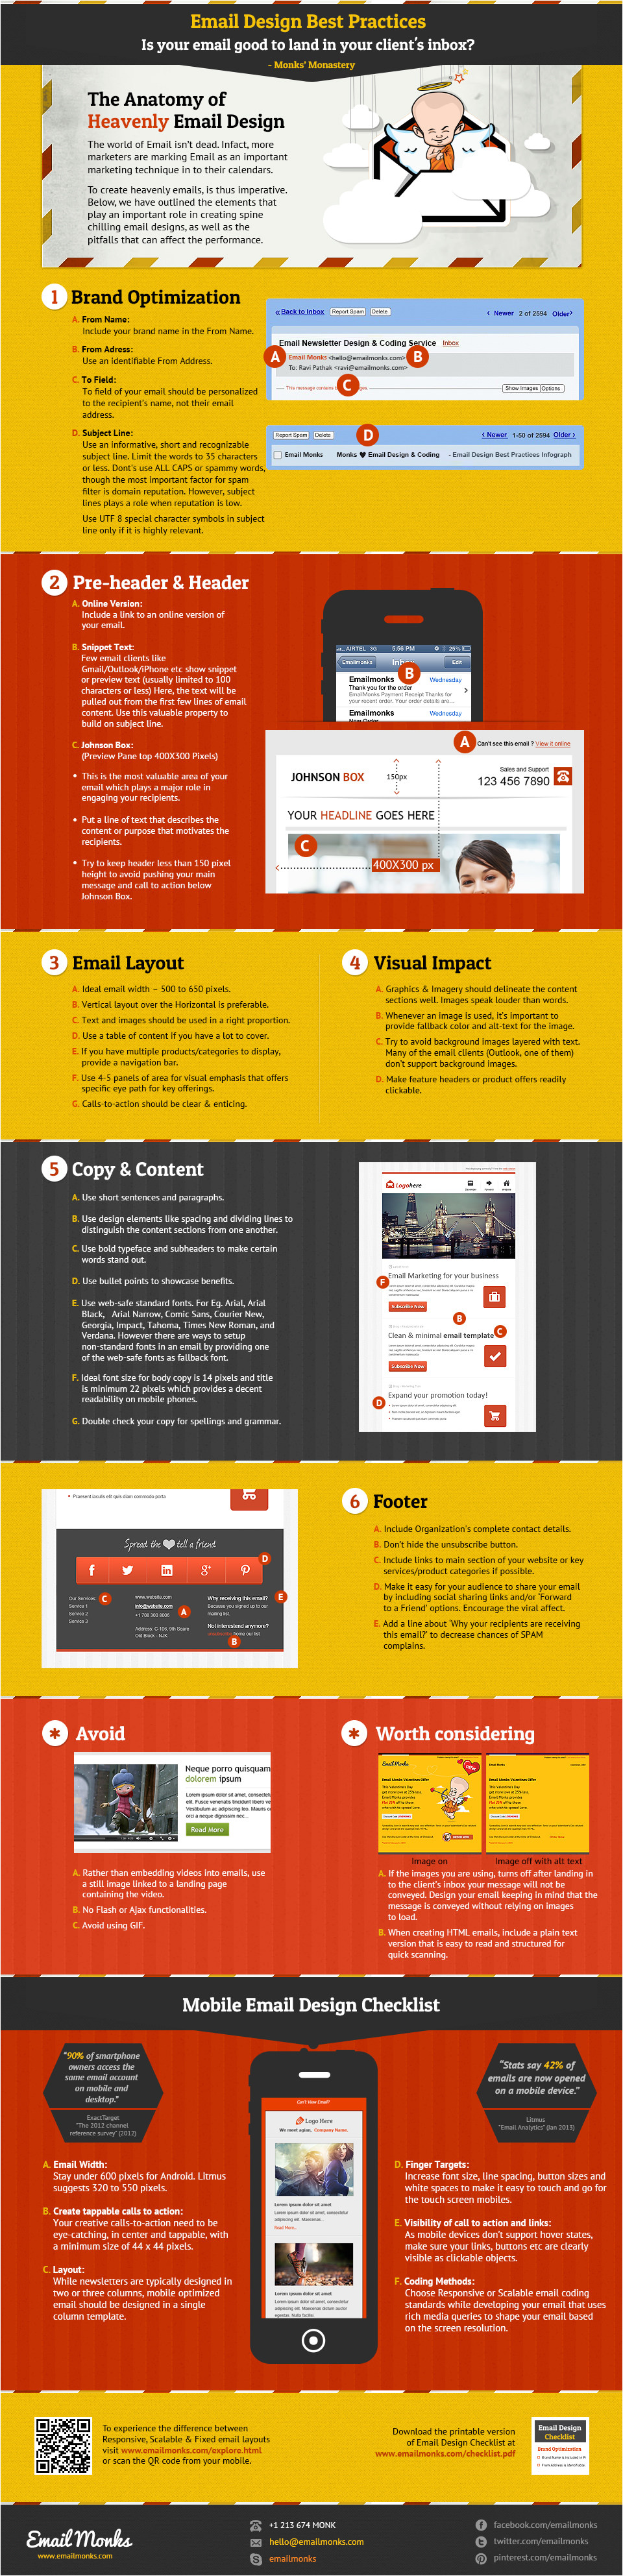 Email Template Design Best Practices Email Design Best Practices Infographic Smart Insights